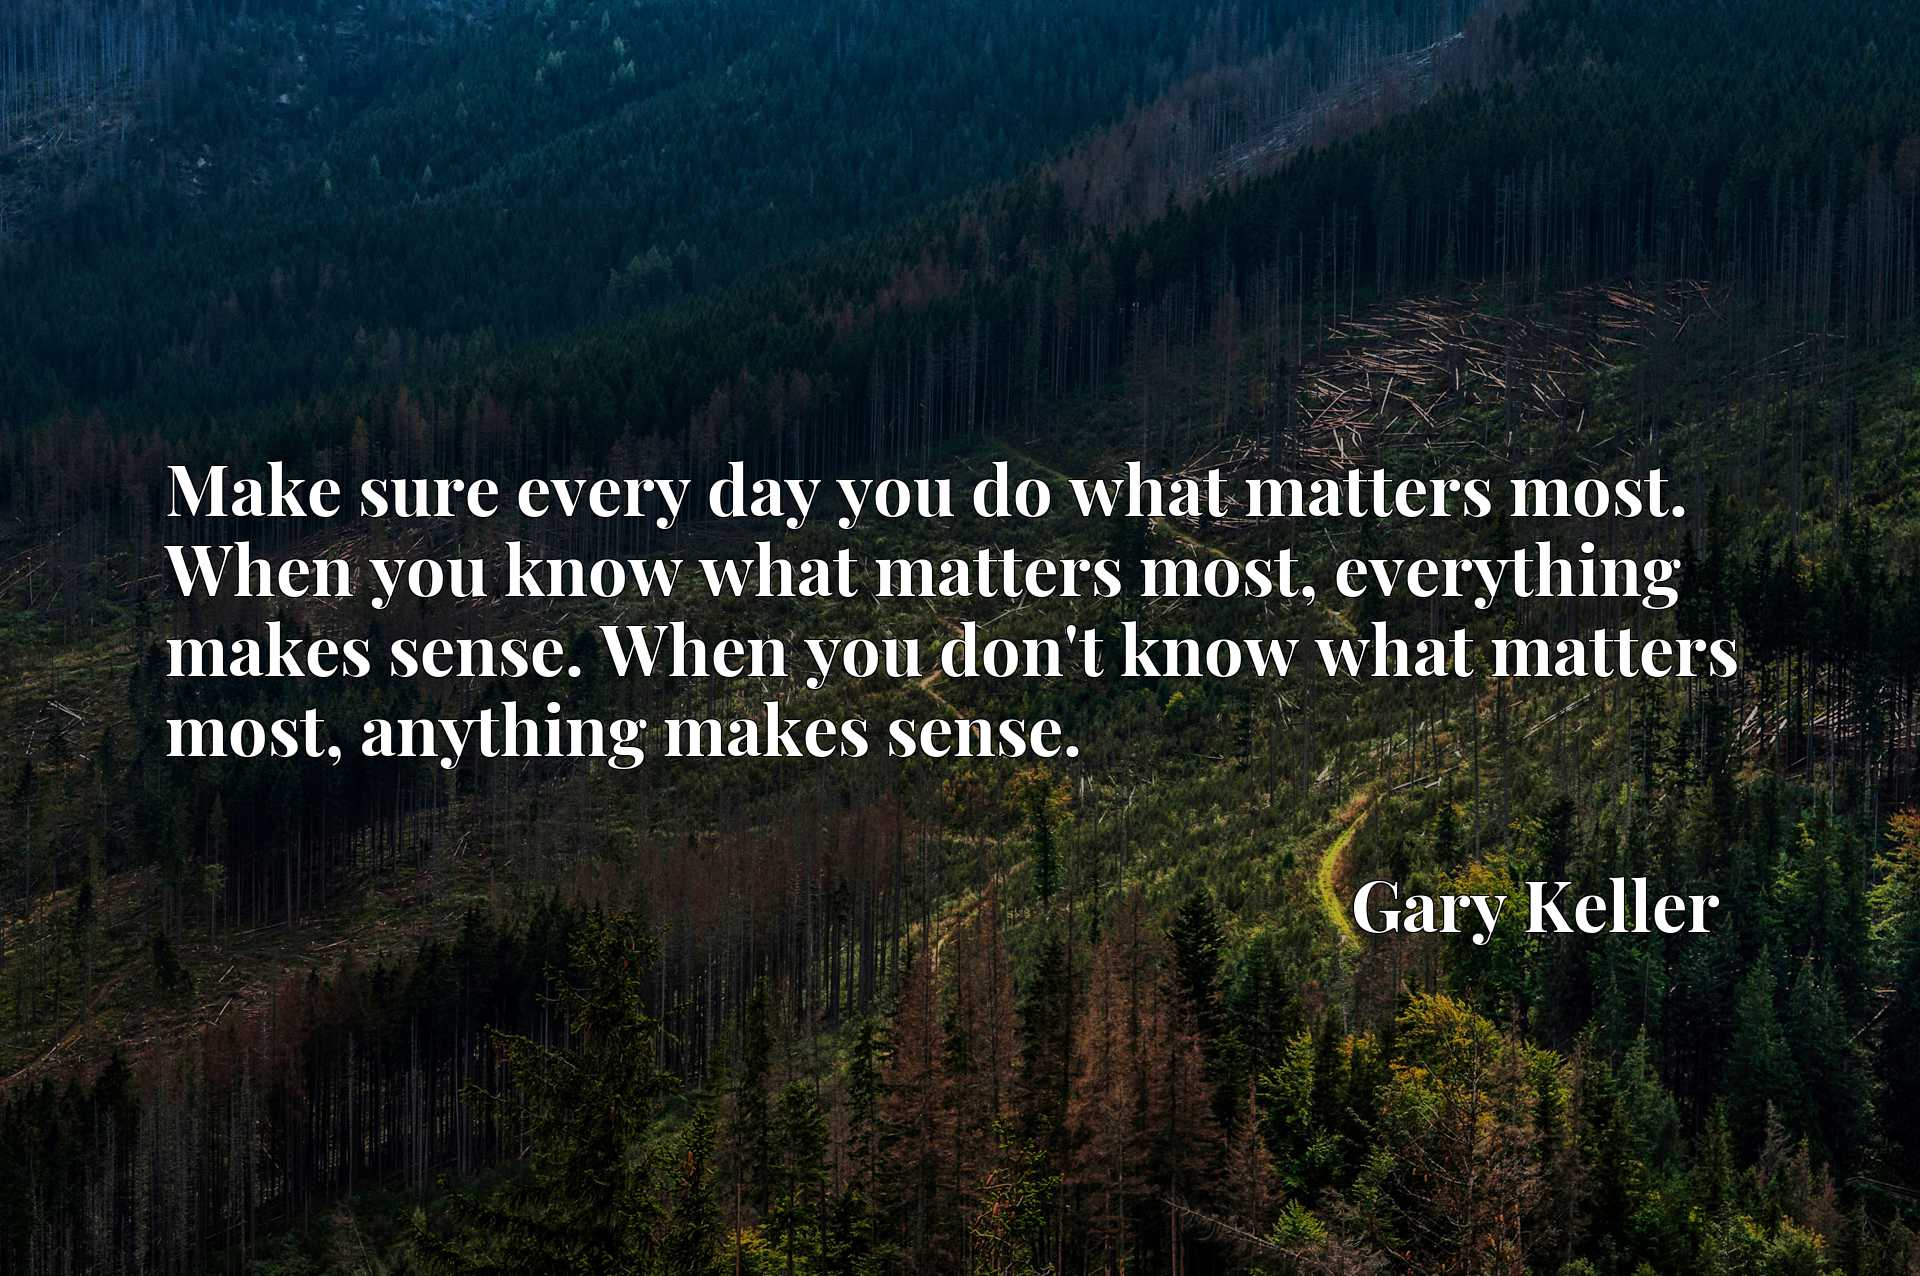 Make sure every day you do what matters most. When you know what matters most, everything makes sense. When you don't know what matters most, anything makes sense.